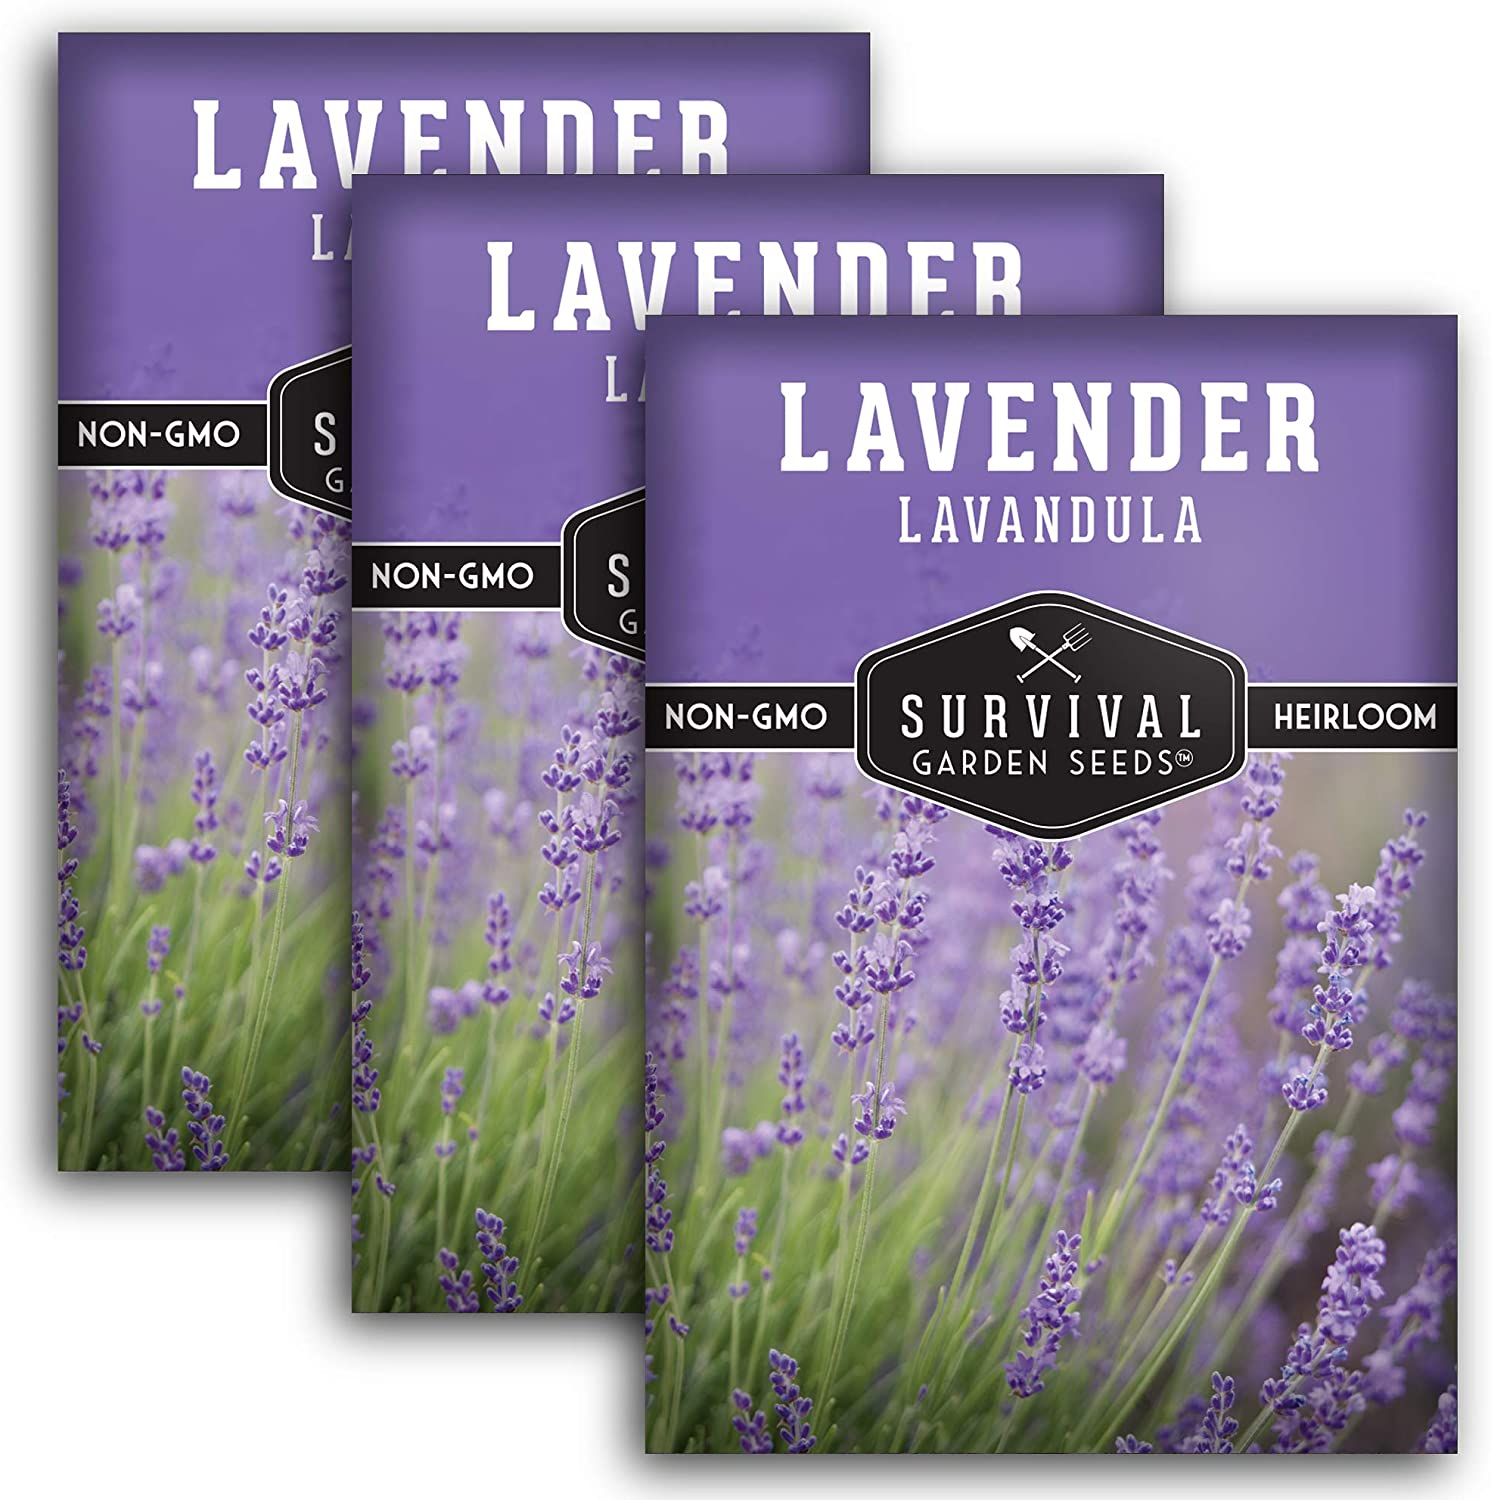 Survival Garden Seeds - Lavender Seed for Planting - 3 Packets with Instructions to Plant and Grow in Your Home Vegetable Garden - Non-GMO Heirloom Variety